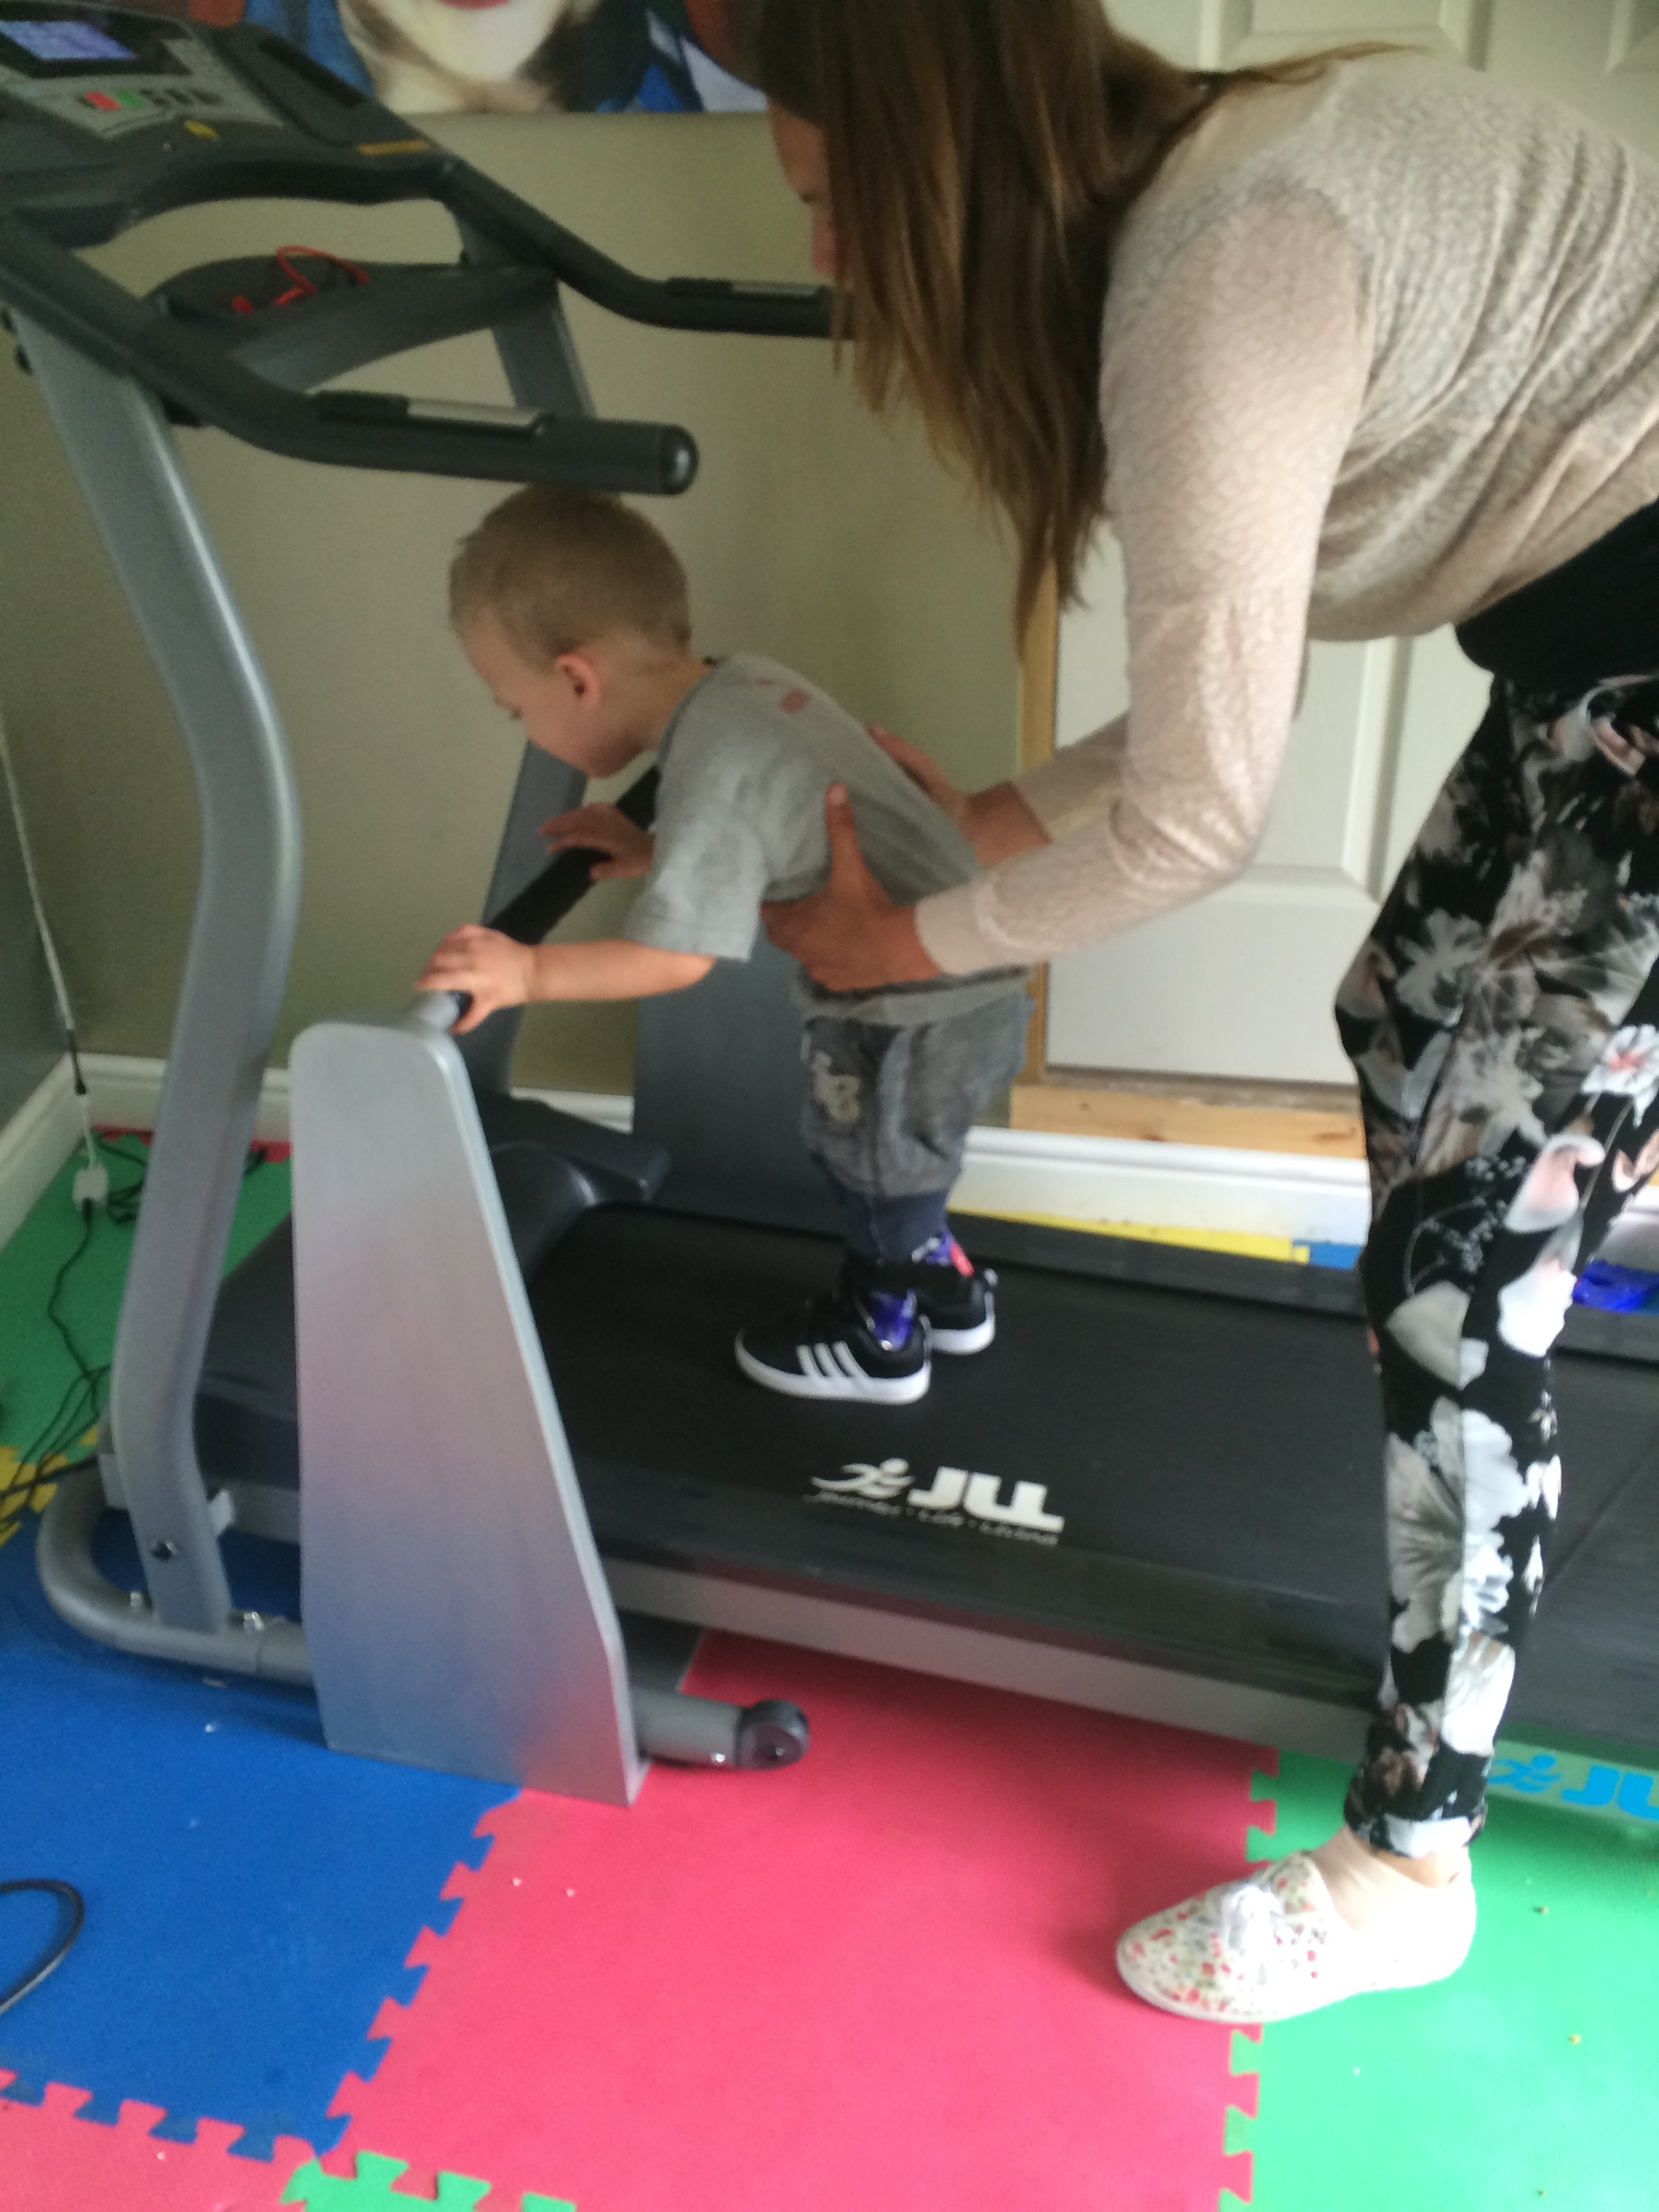 A Heart-warming Story Two Year Old Isaac With Cerebral Palsy